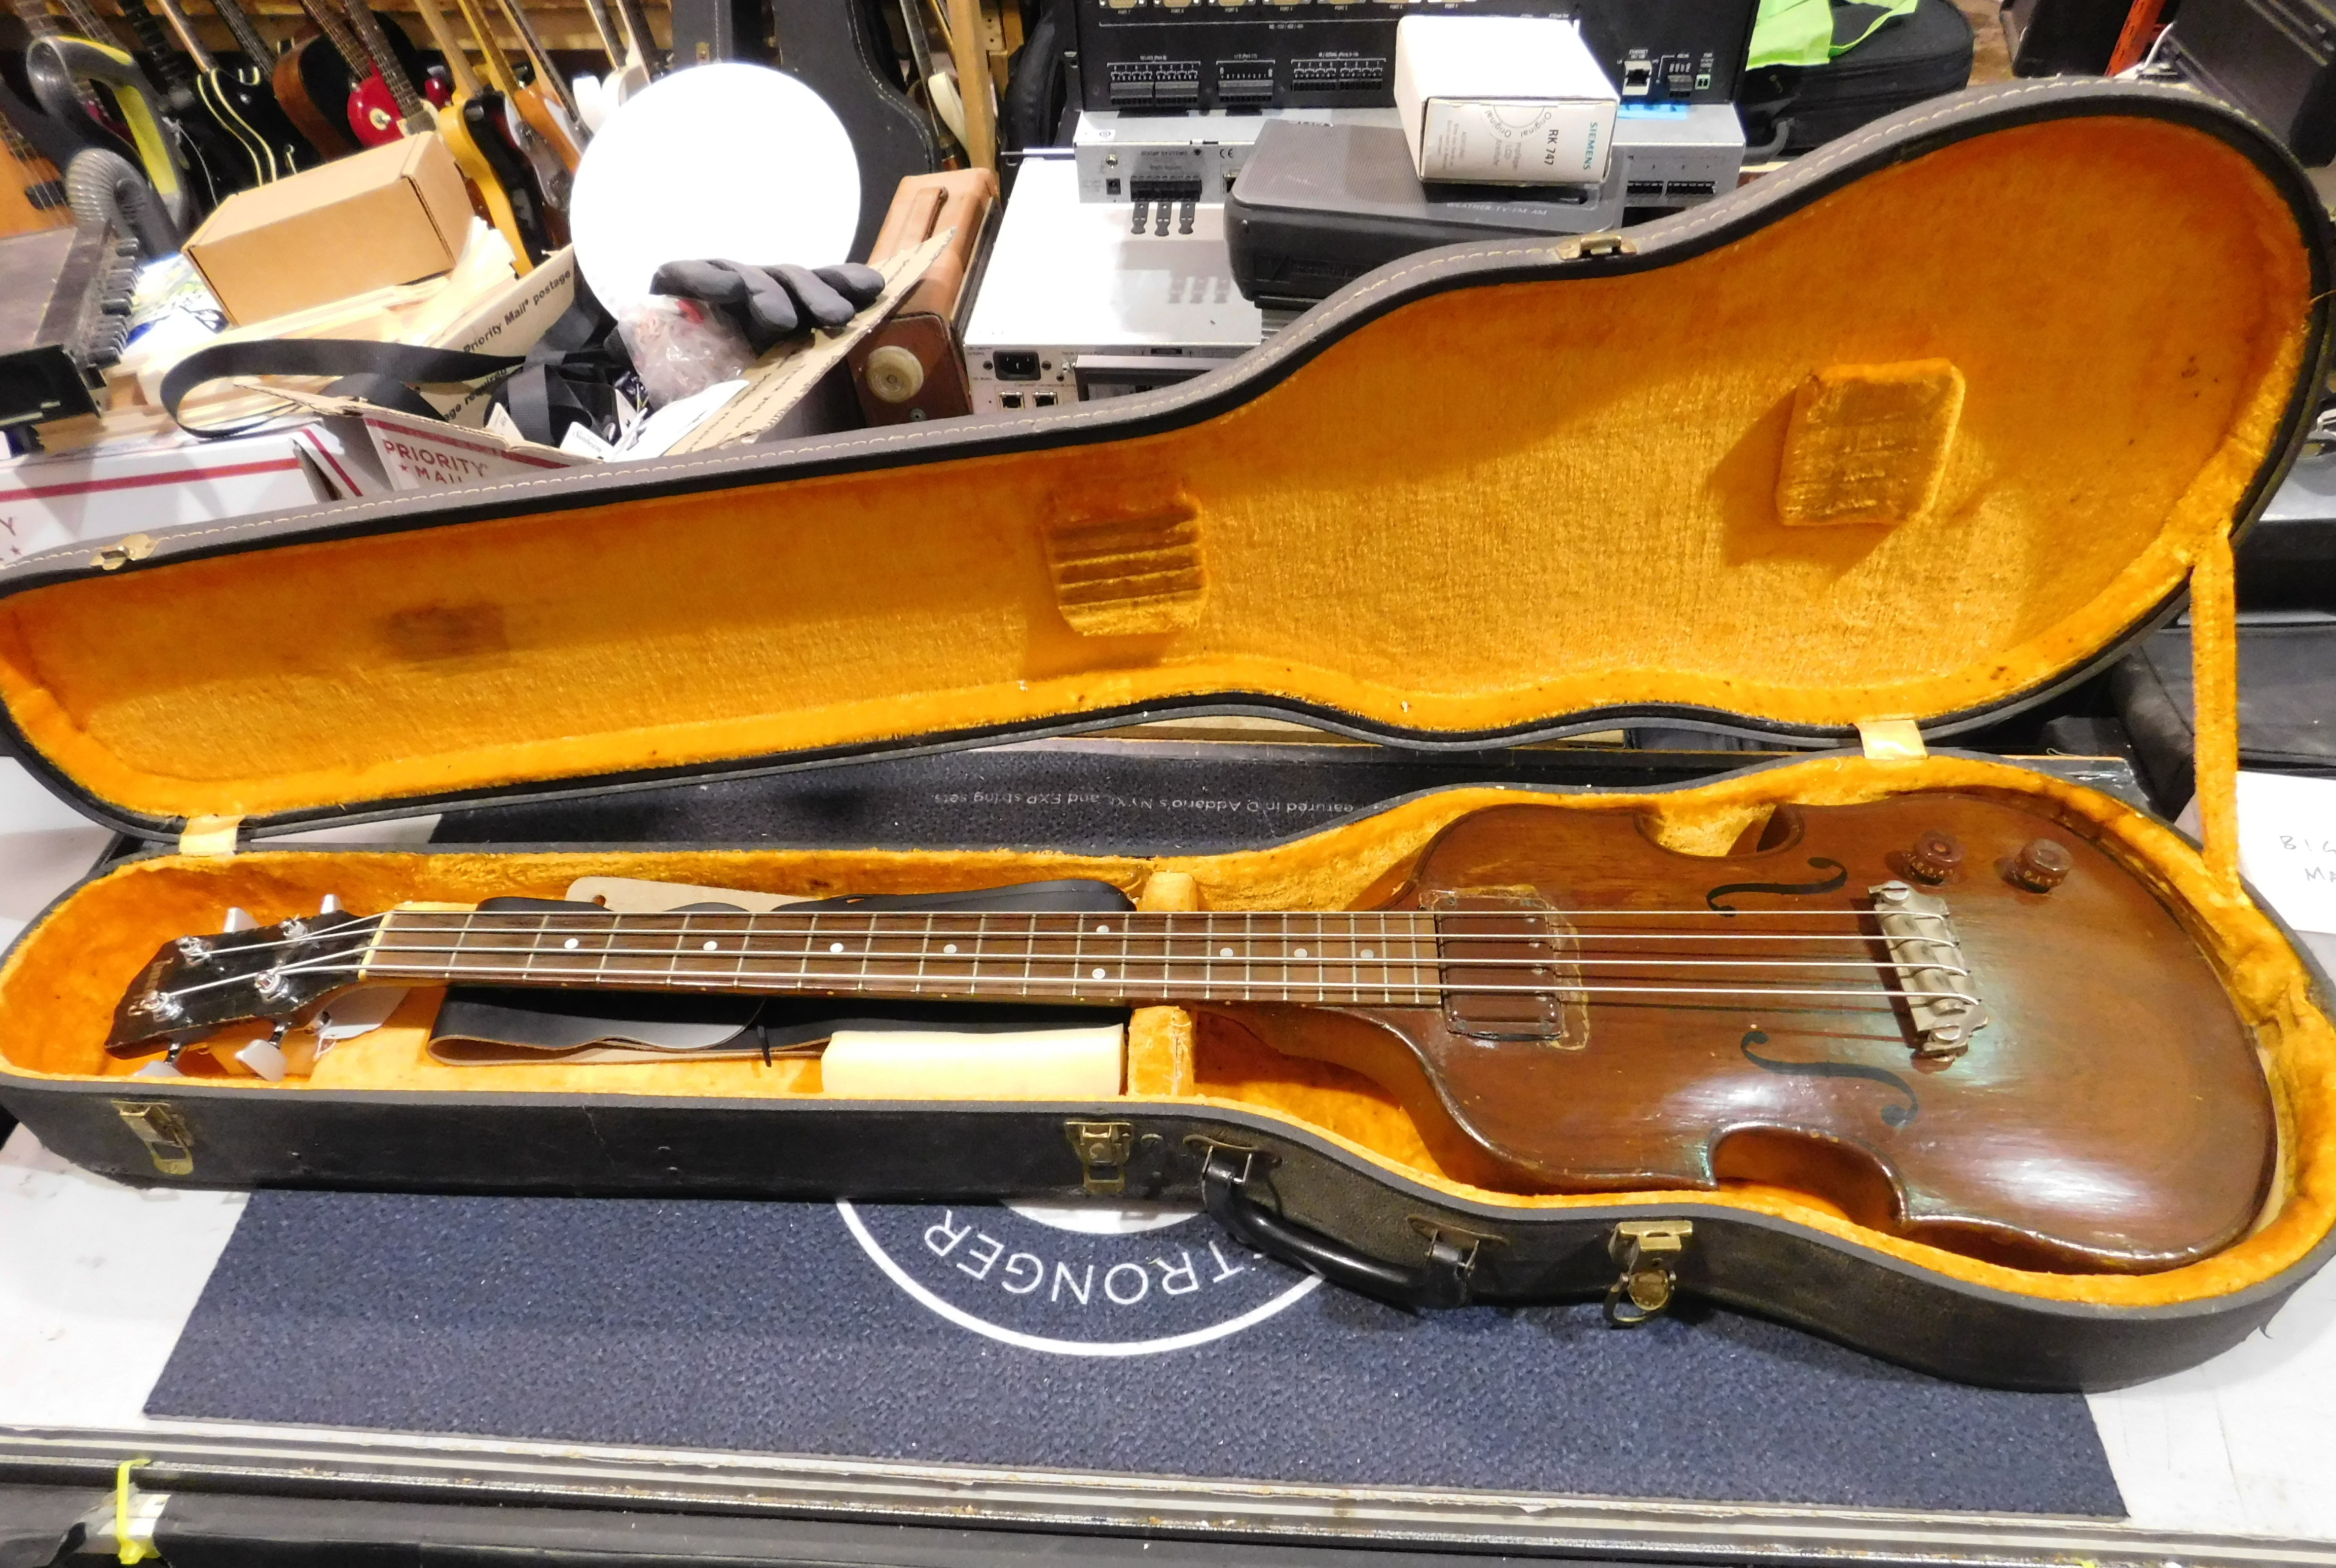 1950's GIBSON EB Bass Vintage 4-String Electric Bass - LOCAL PICKUP ONLY!